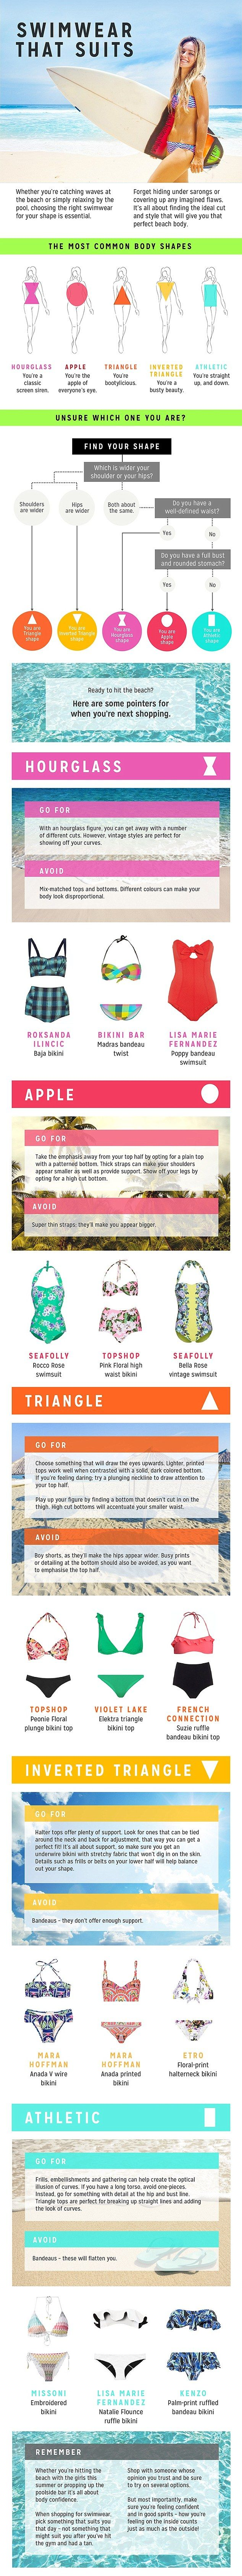 Infographic shows how to choose the RIGHT swimsuit for your body type #dailymail